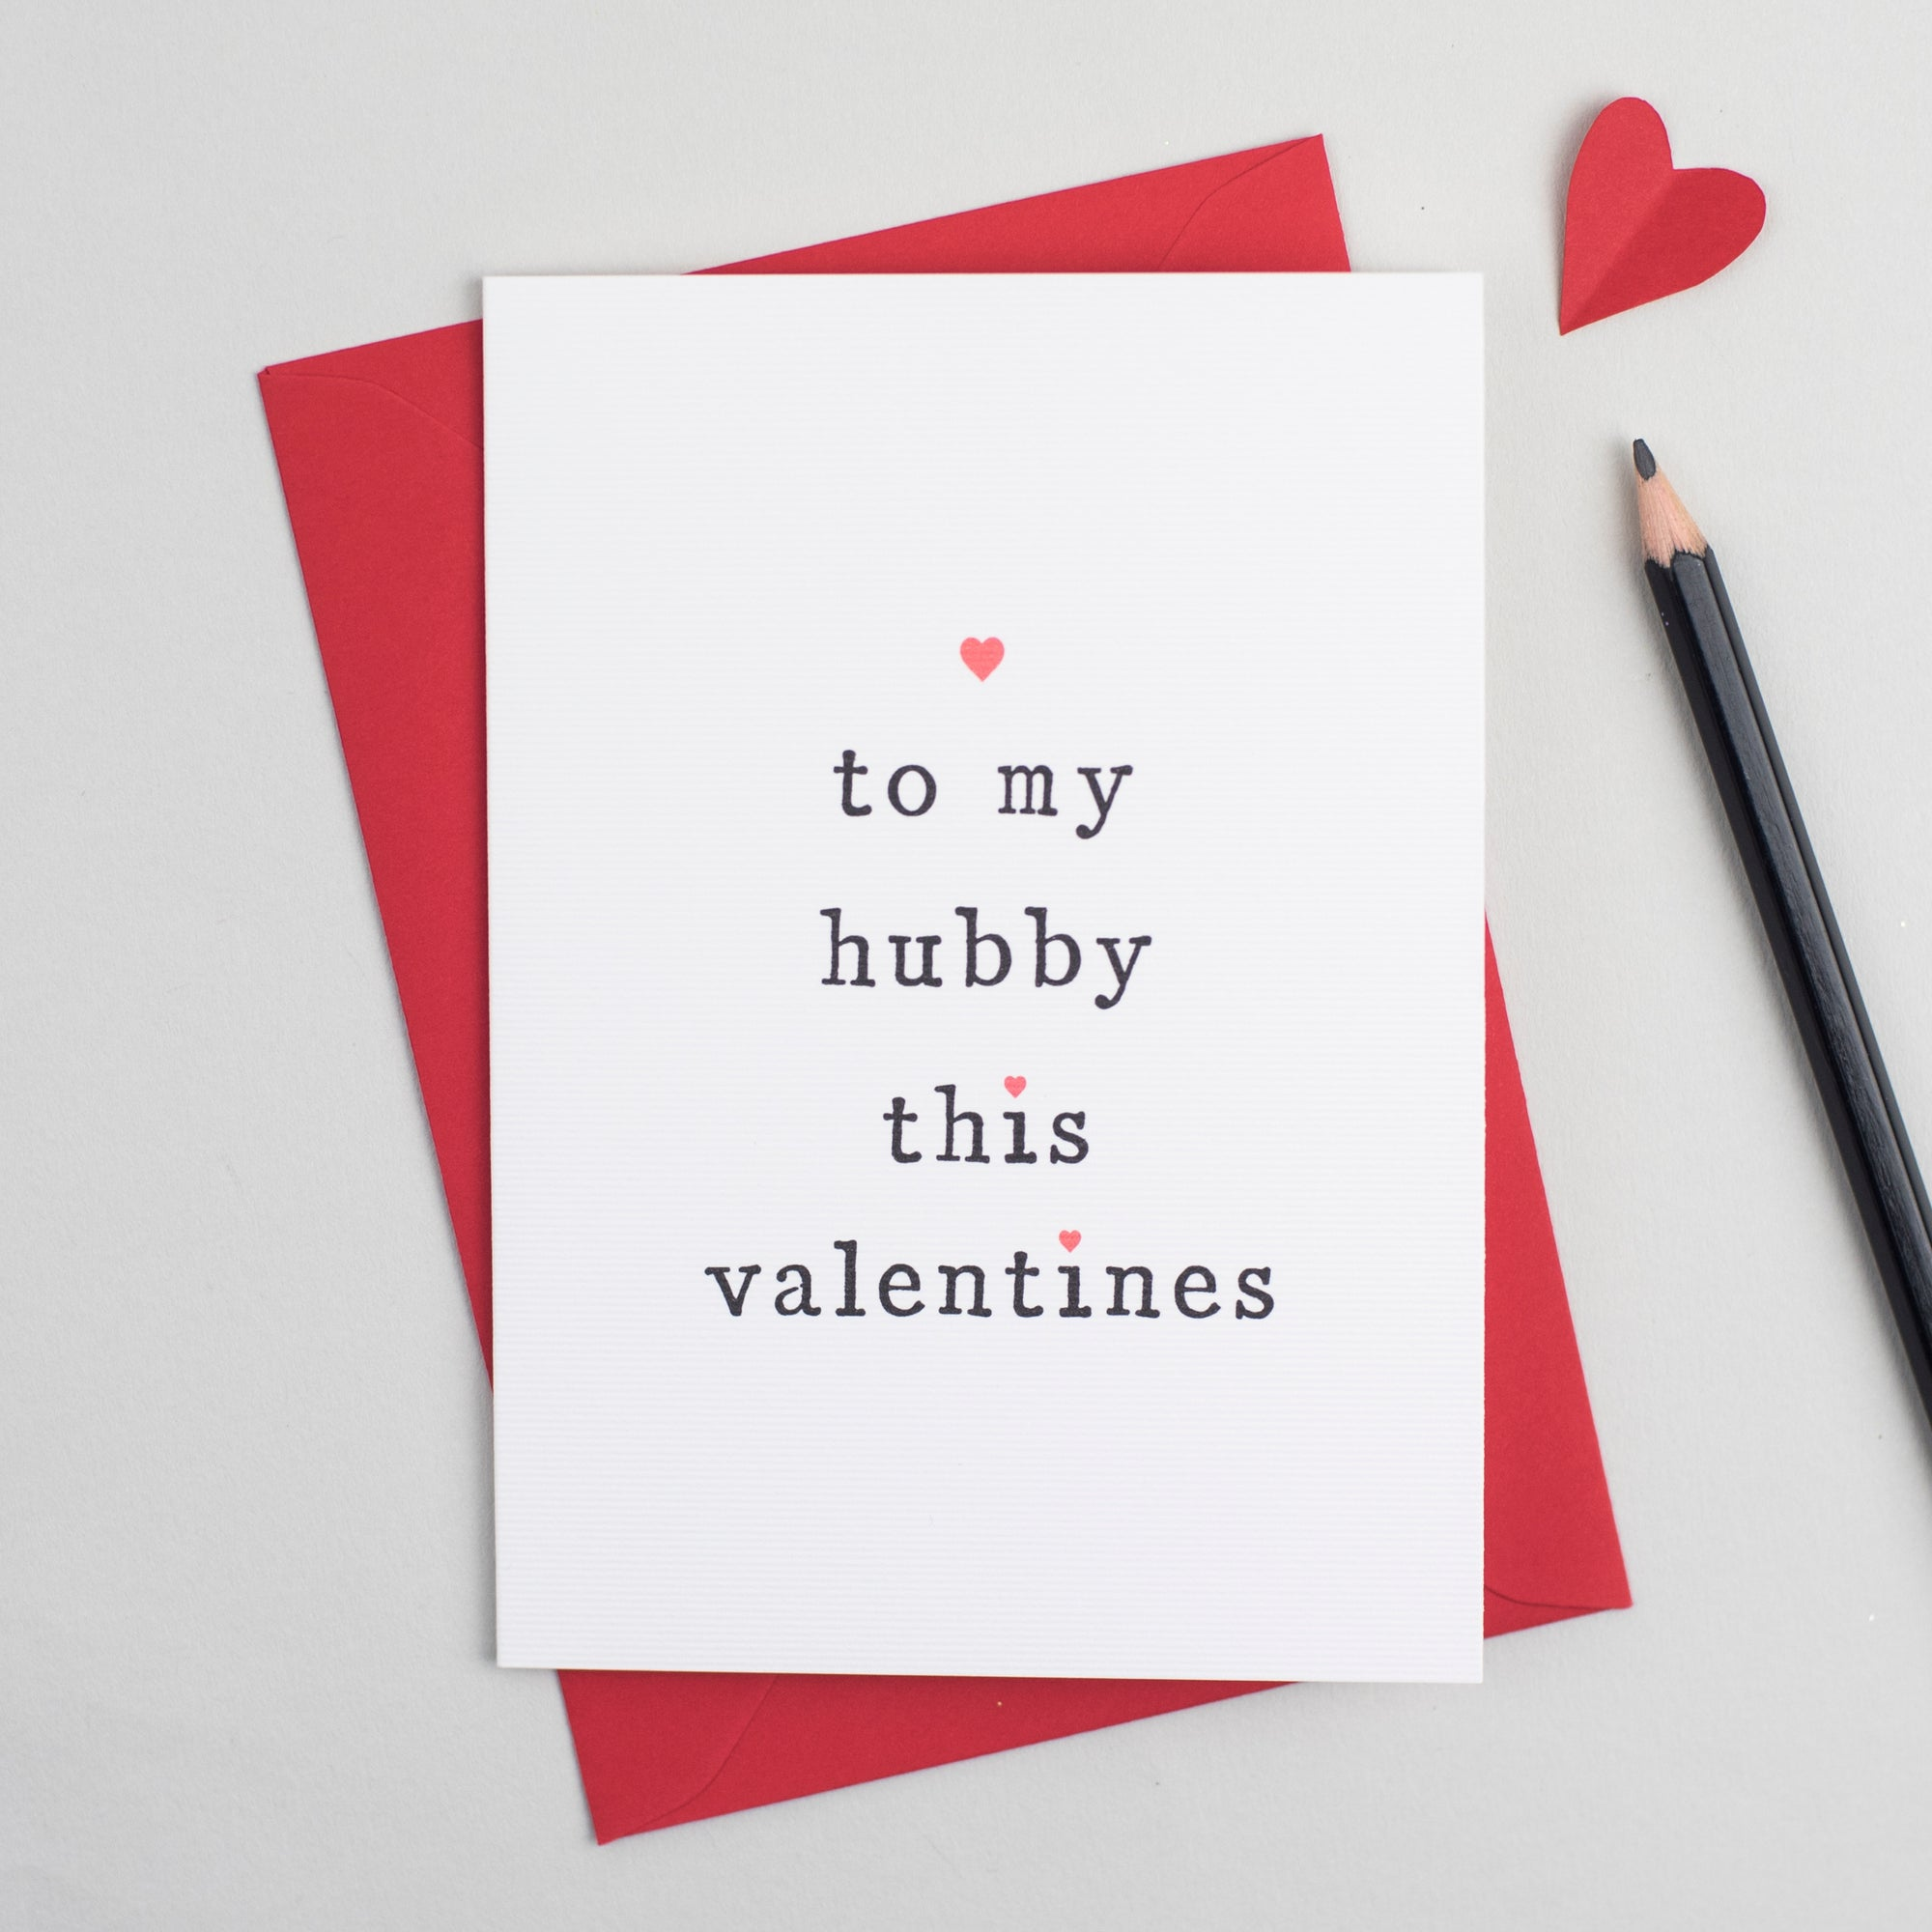 'To My Husband or Wife' Valentine's Day Card Card - The Two Wagtails